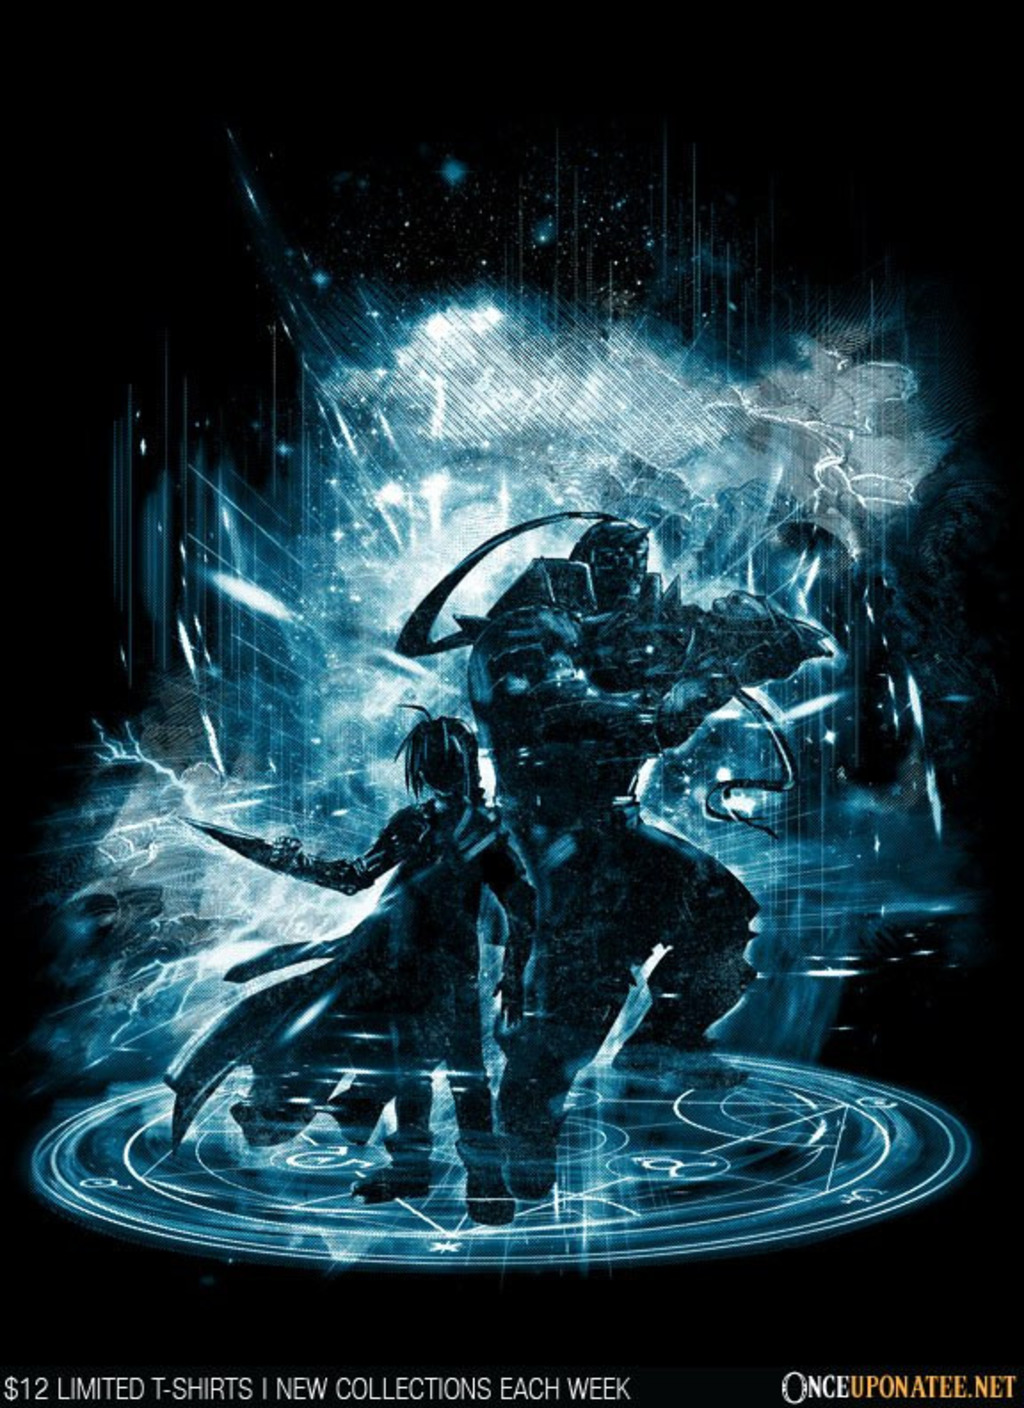 Once Upon a Tee: Alchemist Storm